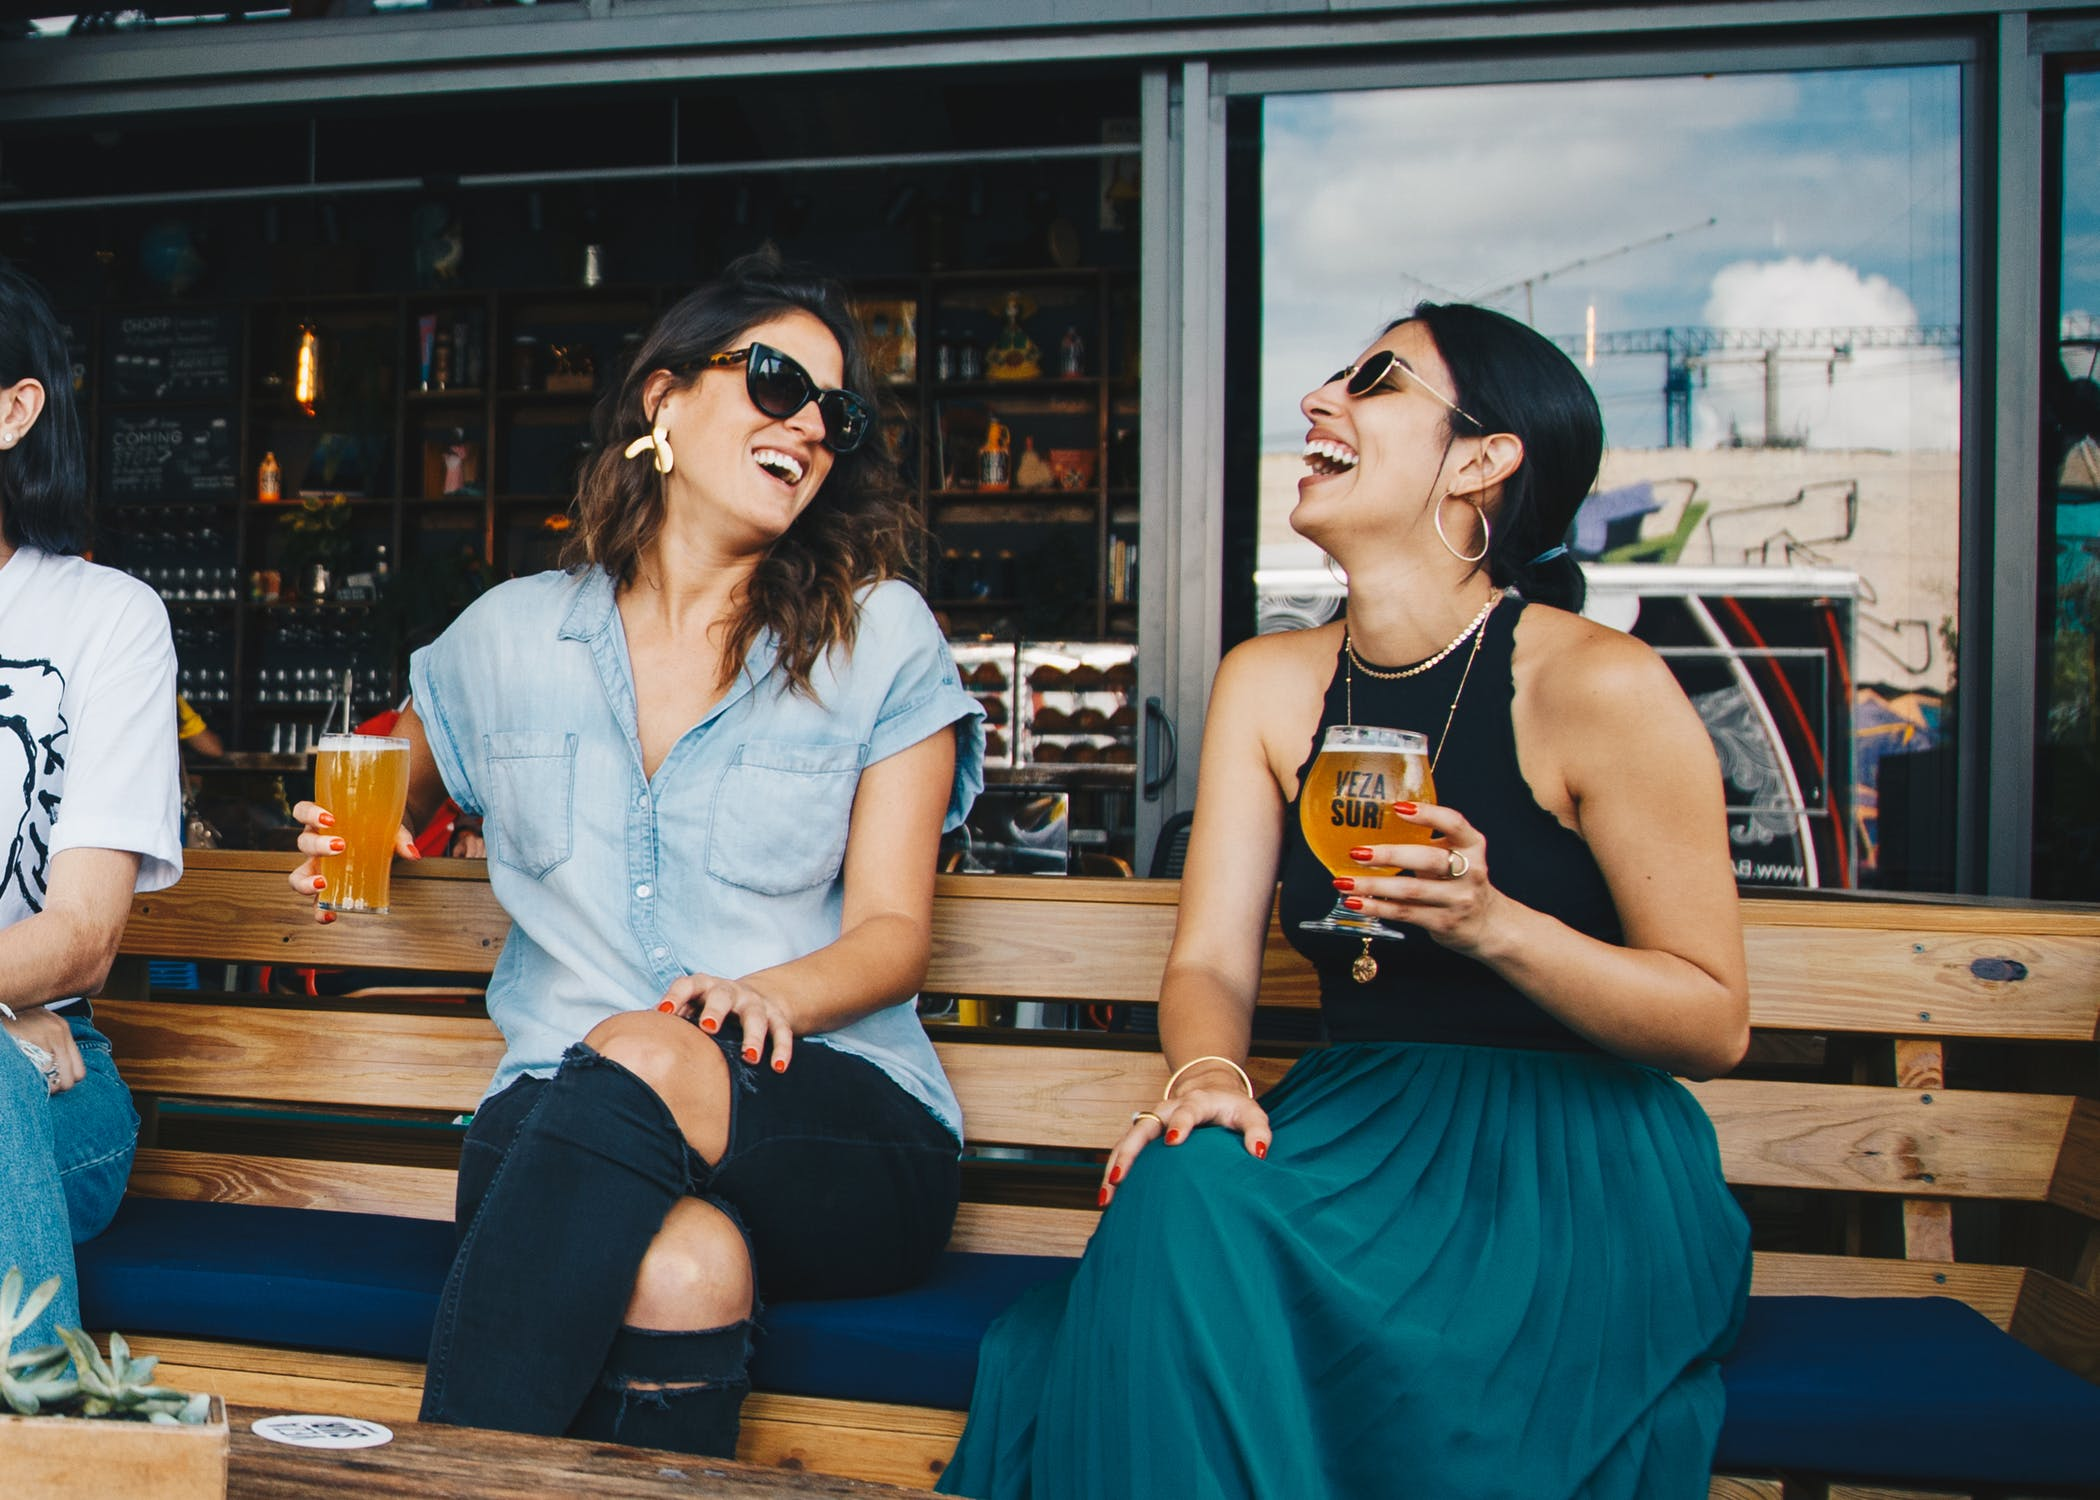 Image of two women laughing